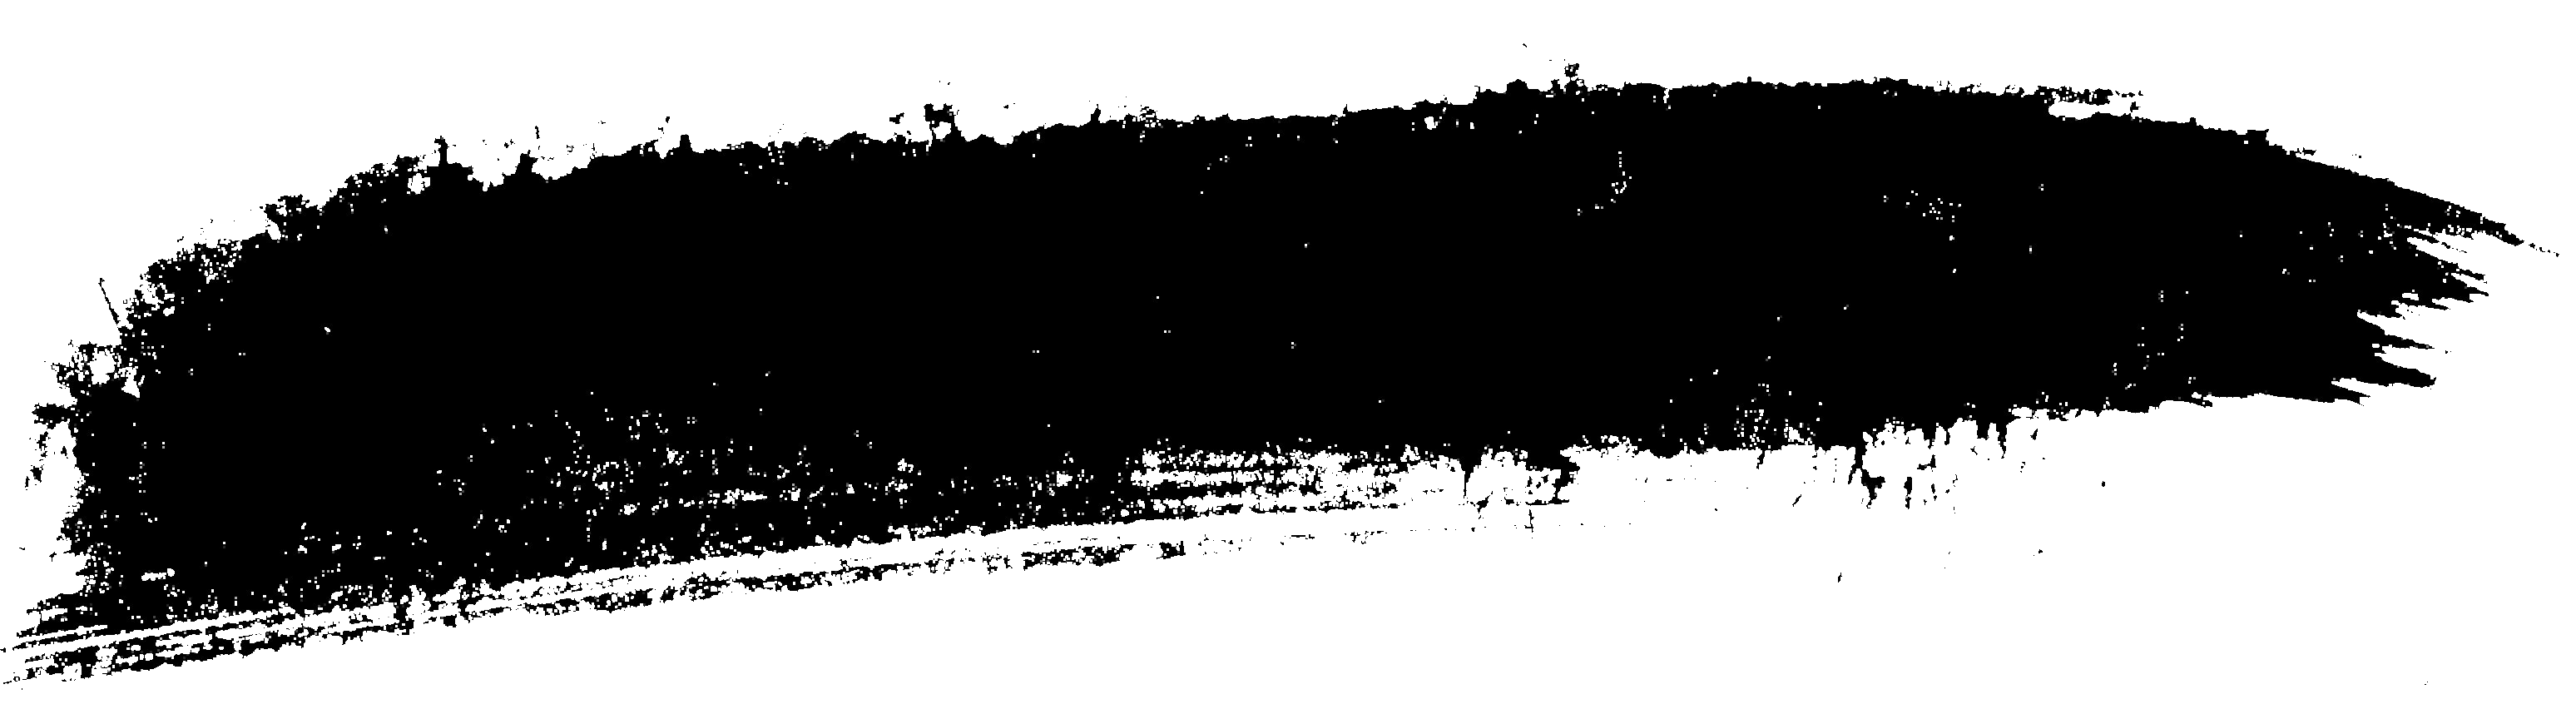 Brush stroke png. Grunge banner transparent